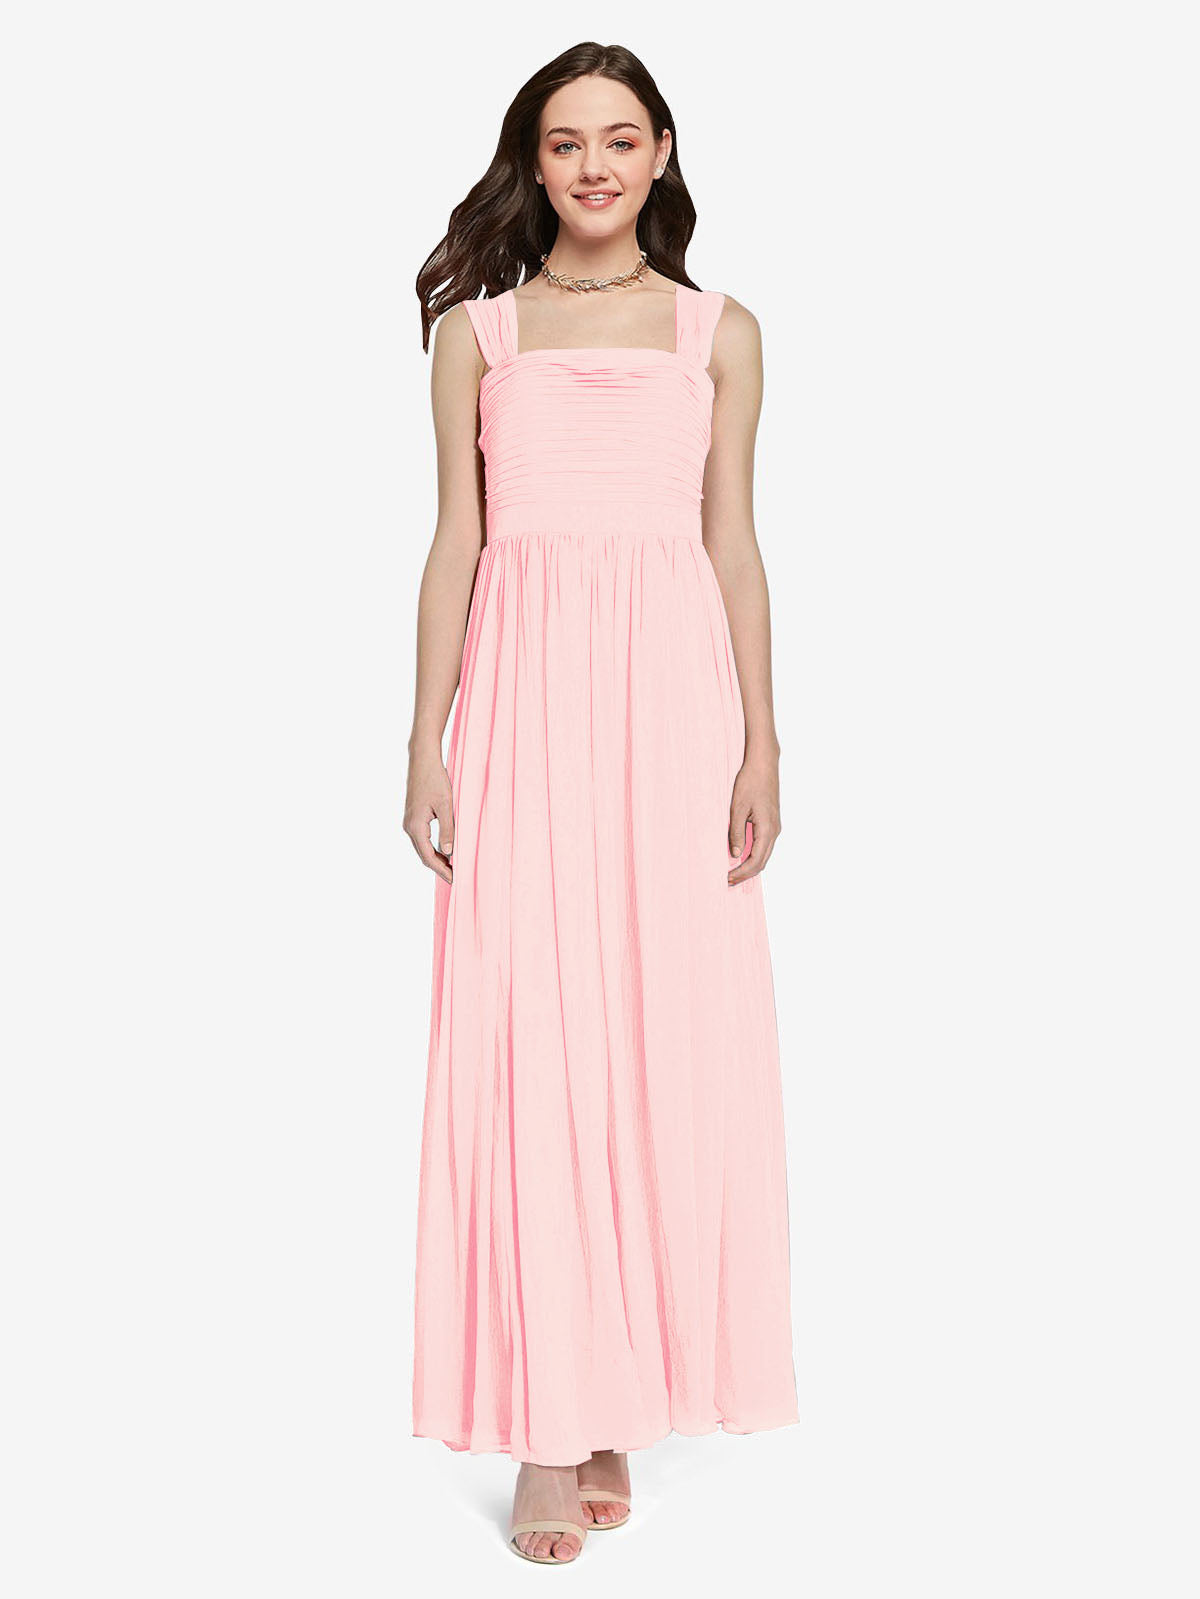 Long A-Line Square Sleeveless Pink Chiffon Bridesmaid Dress Aldridge